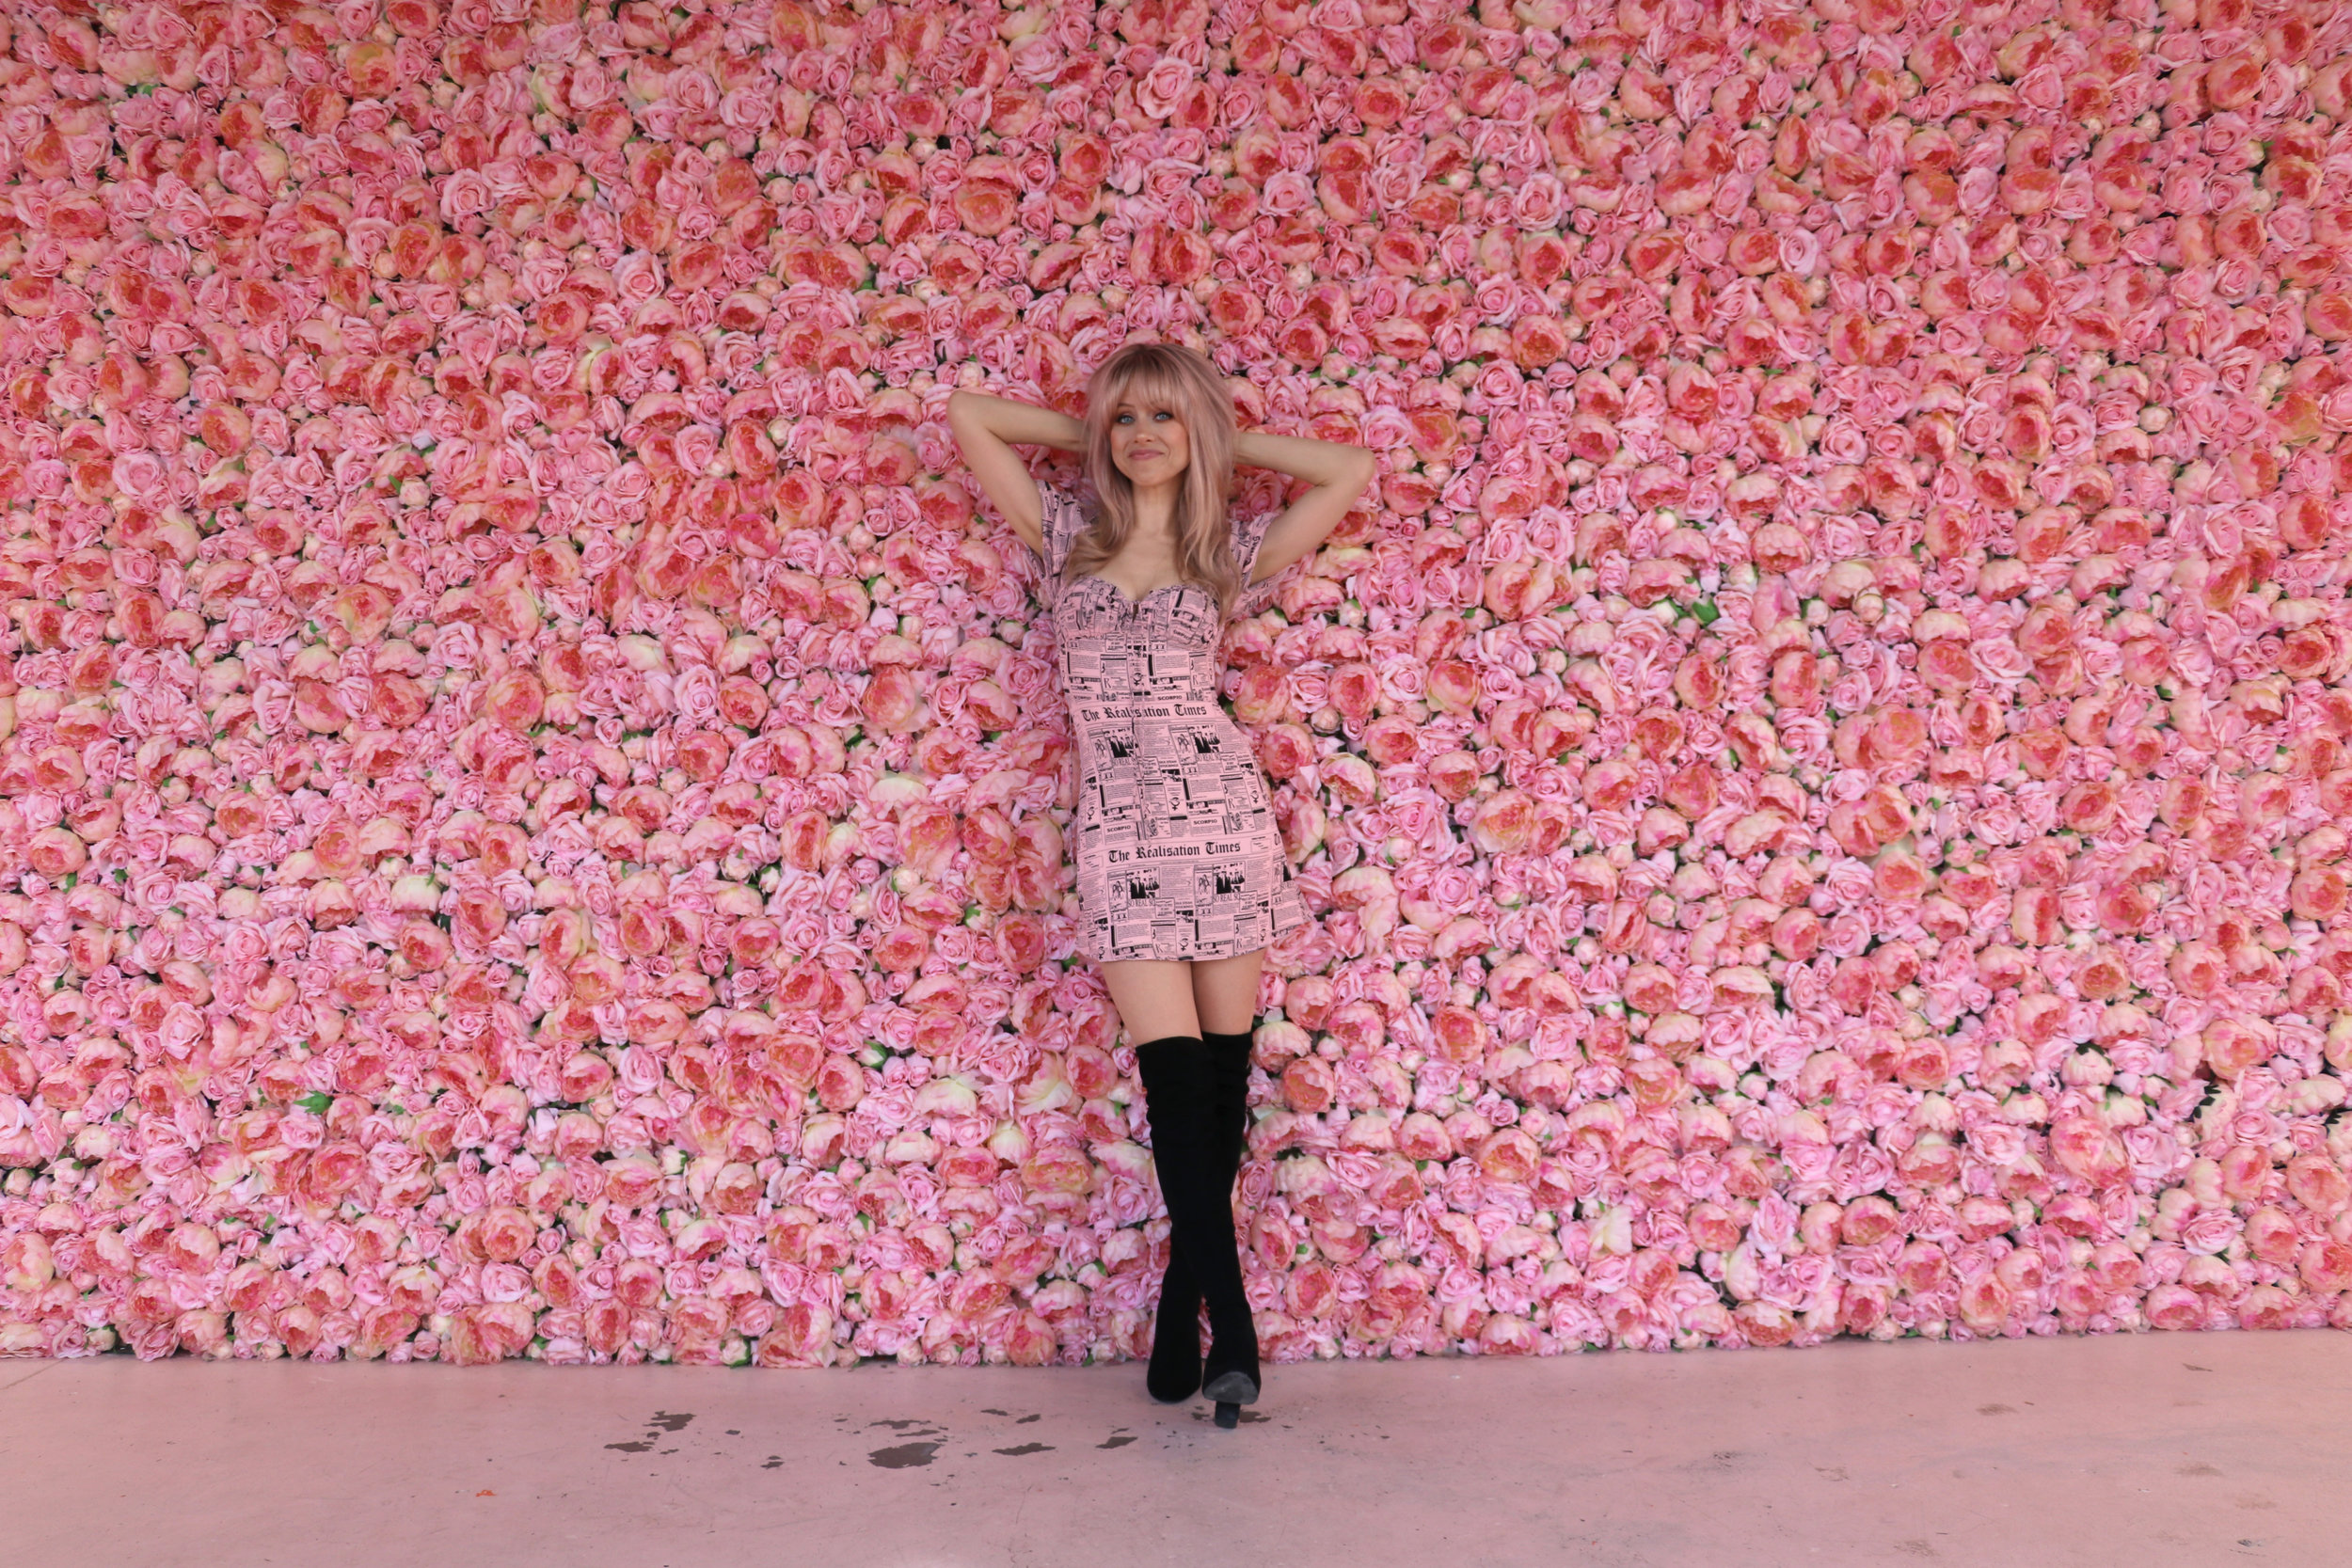 Superholly flower vault rose wall